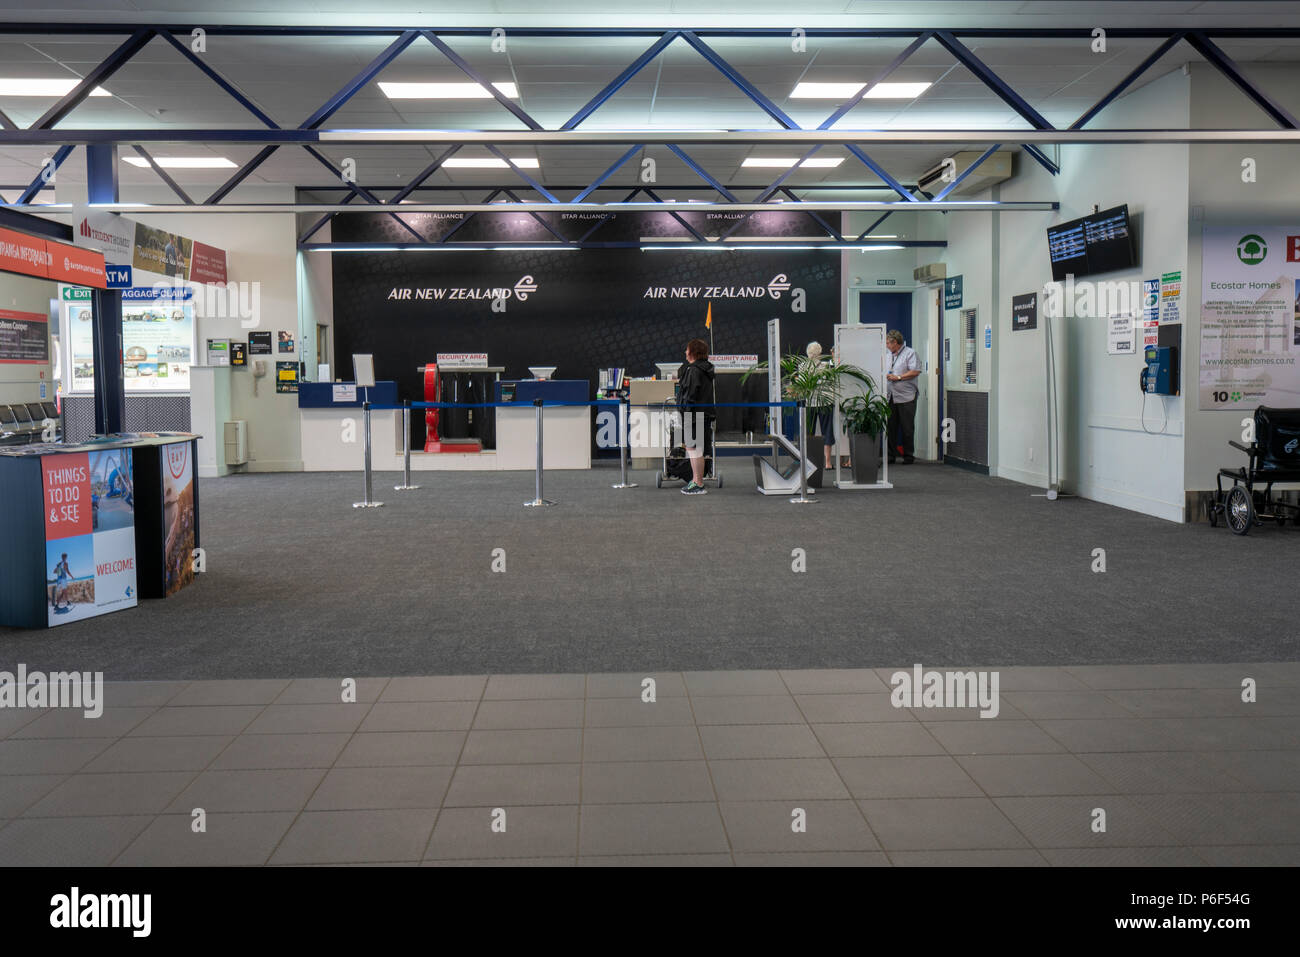 Tauranga New Zealand - January 16, 2018: Inside tauranga airport showing checkin counters with few people - Stock Image